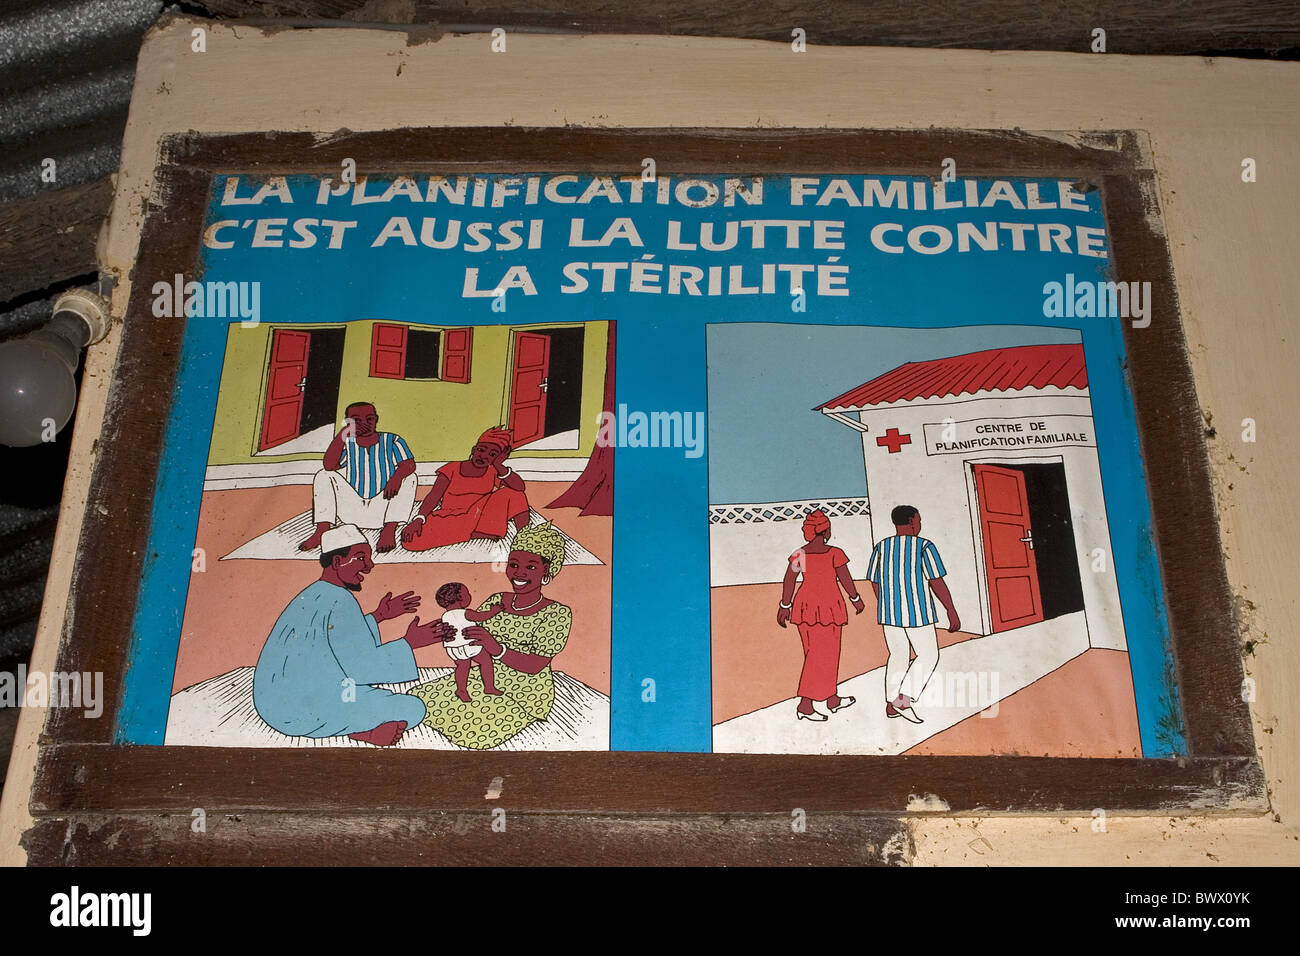 Family planning publicity poster, Senegal - Stock Image